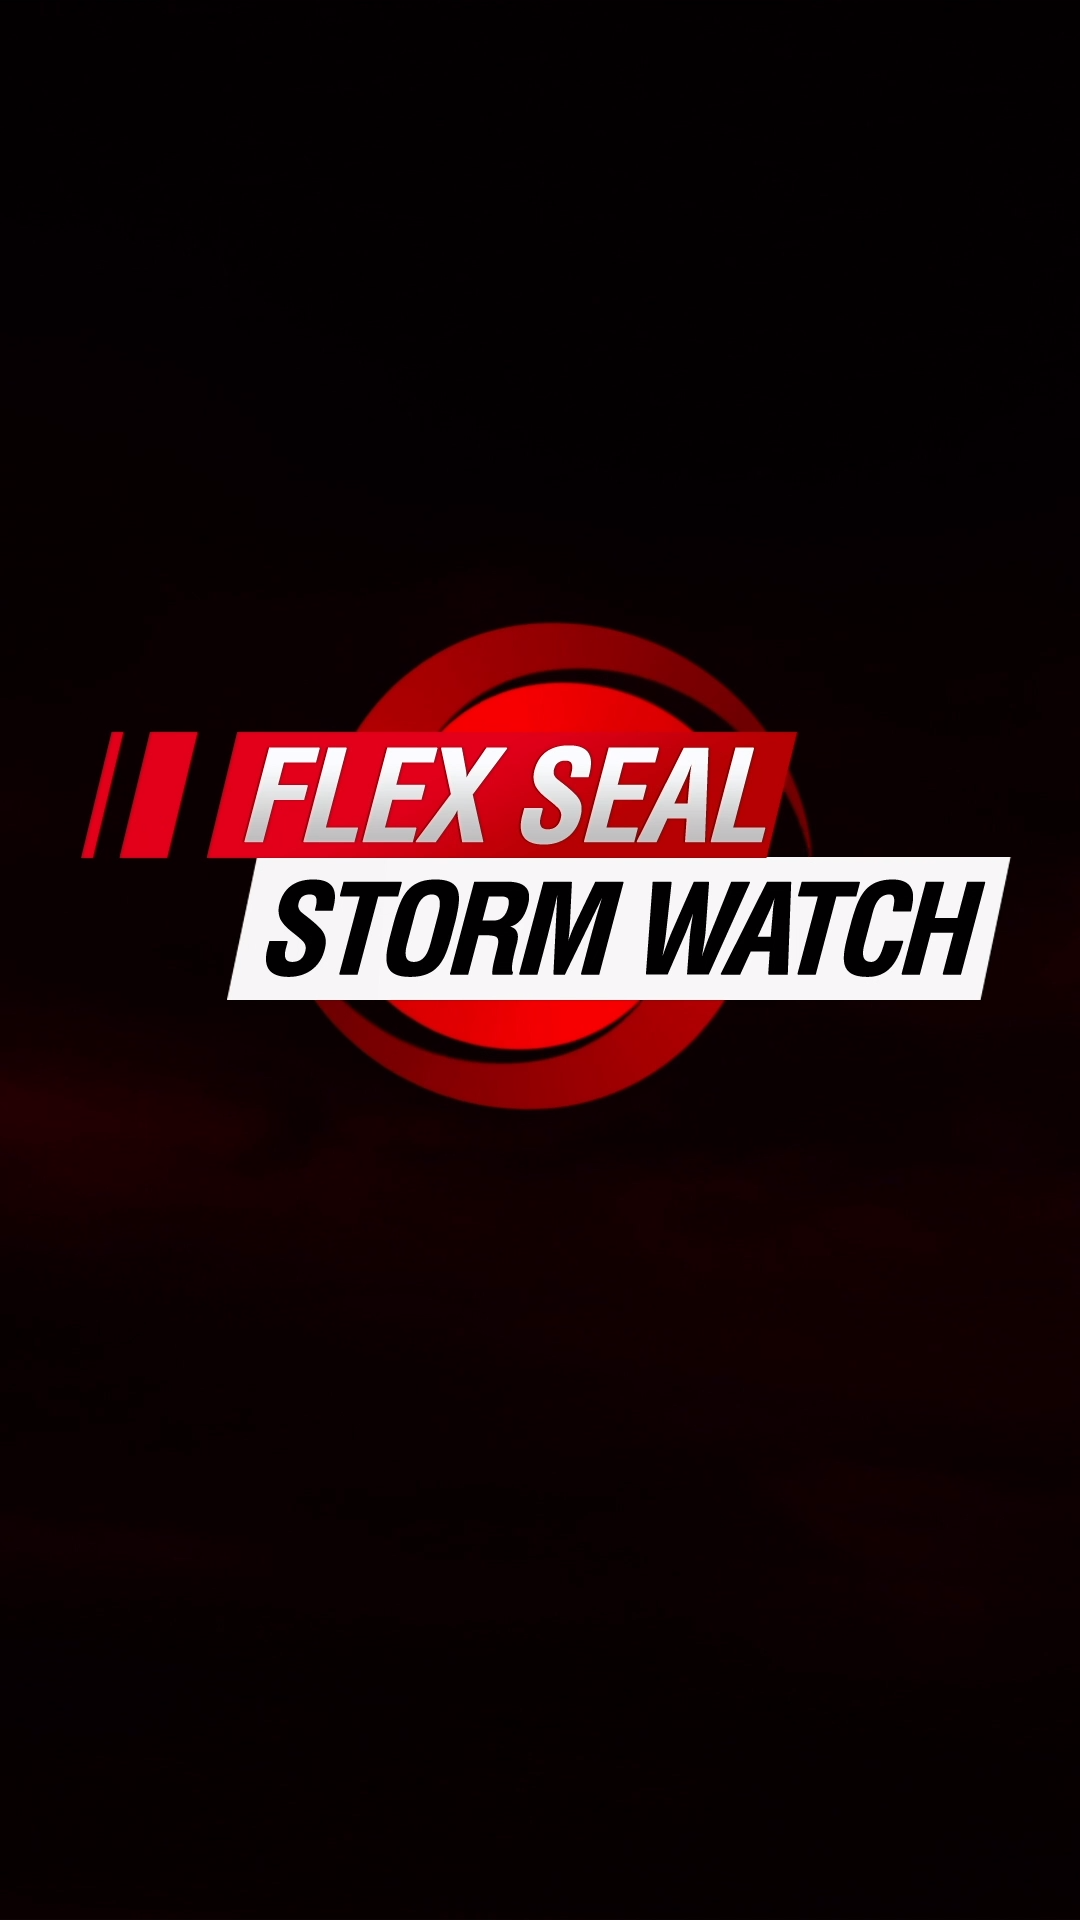 Prepare For Storm Season With The Flex Seal Family Of Products Video In 2020 Seal Flex Singing Videos